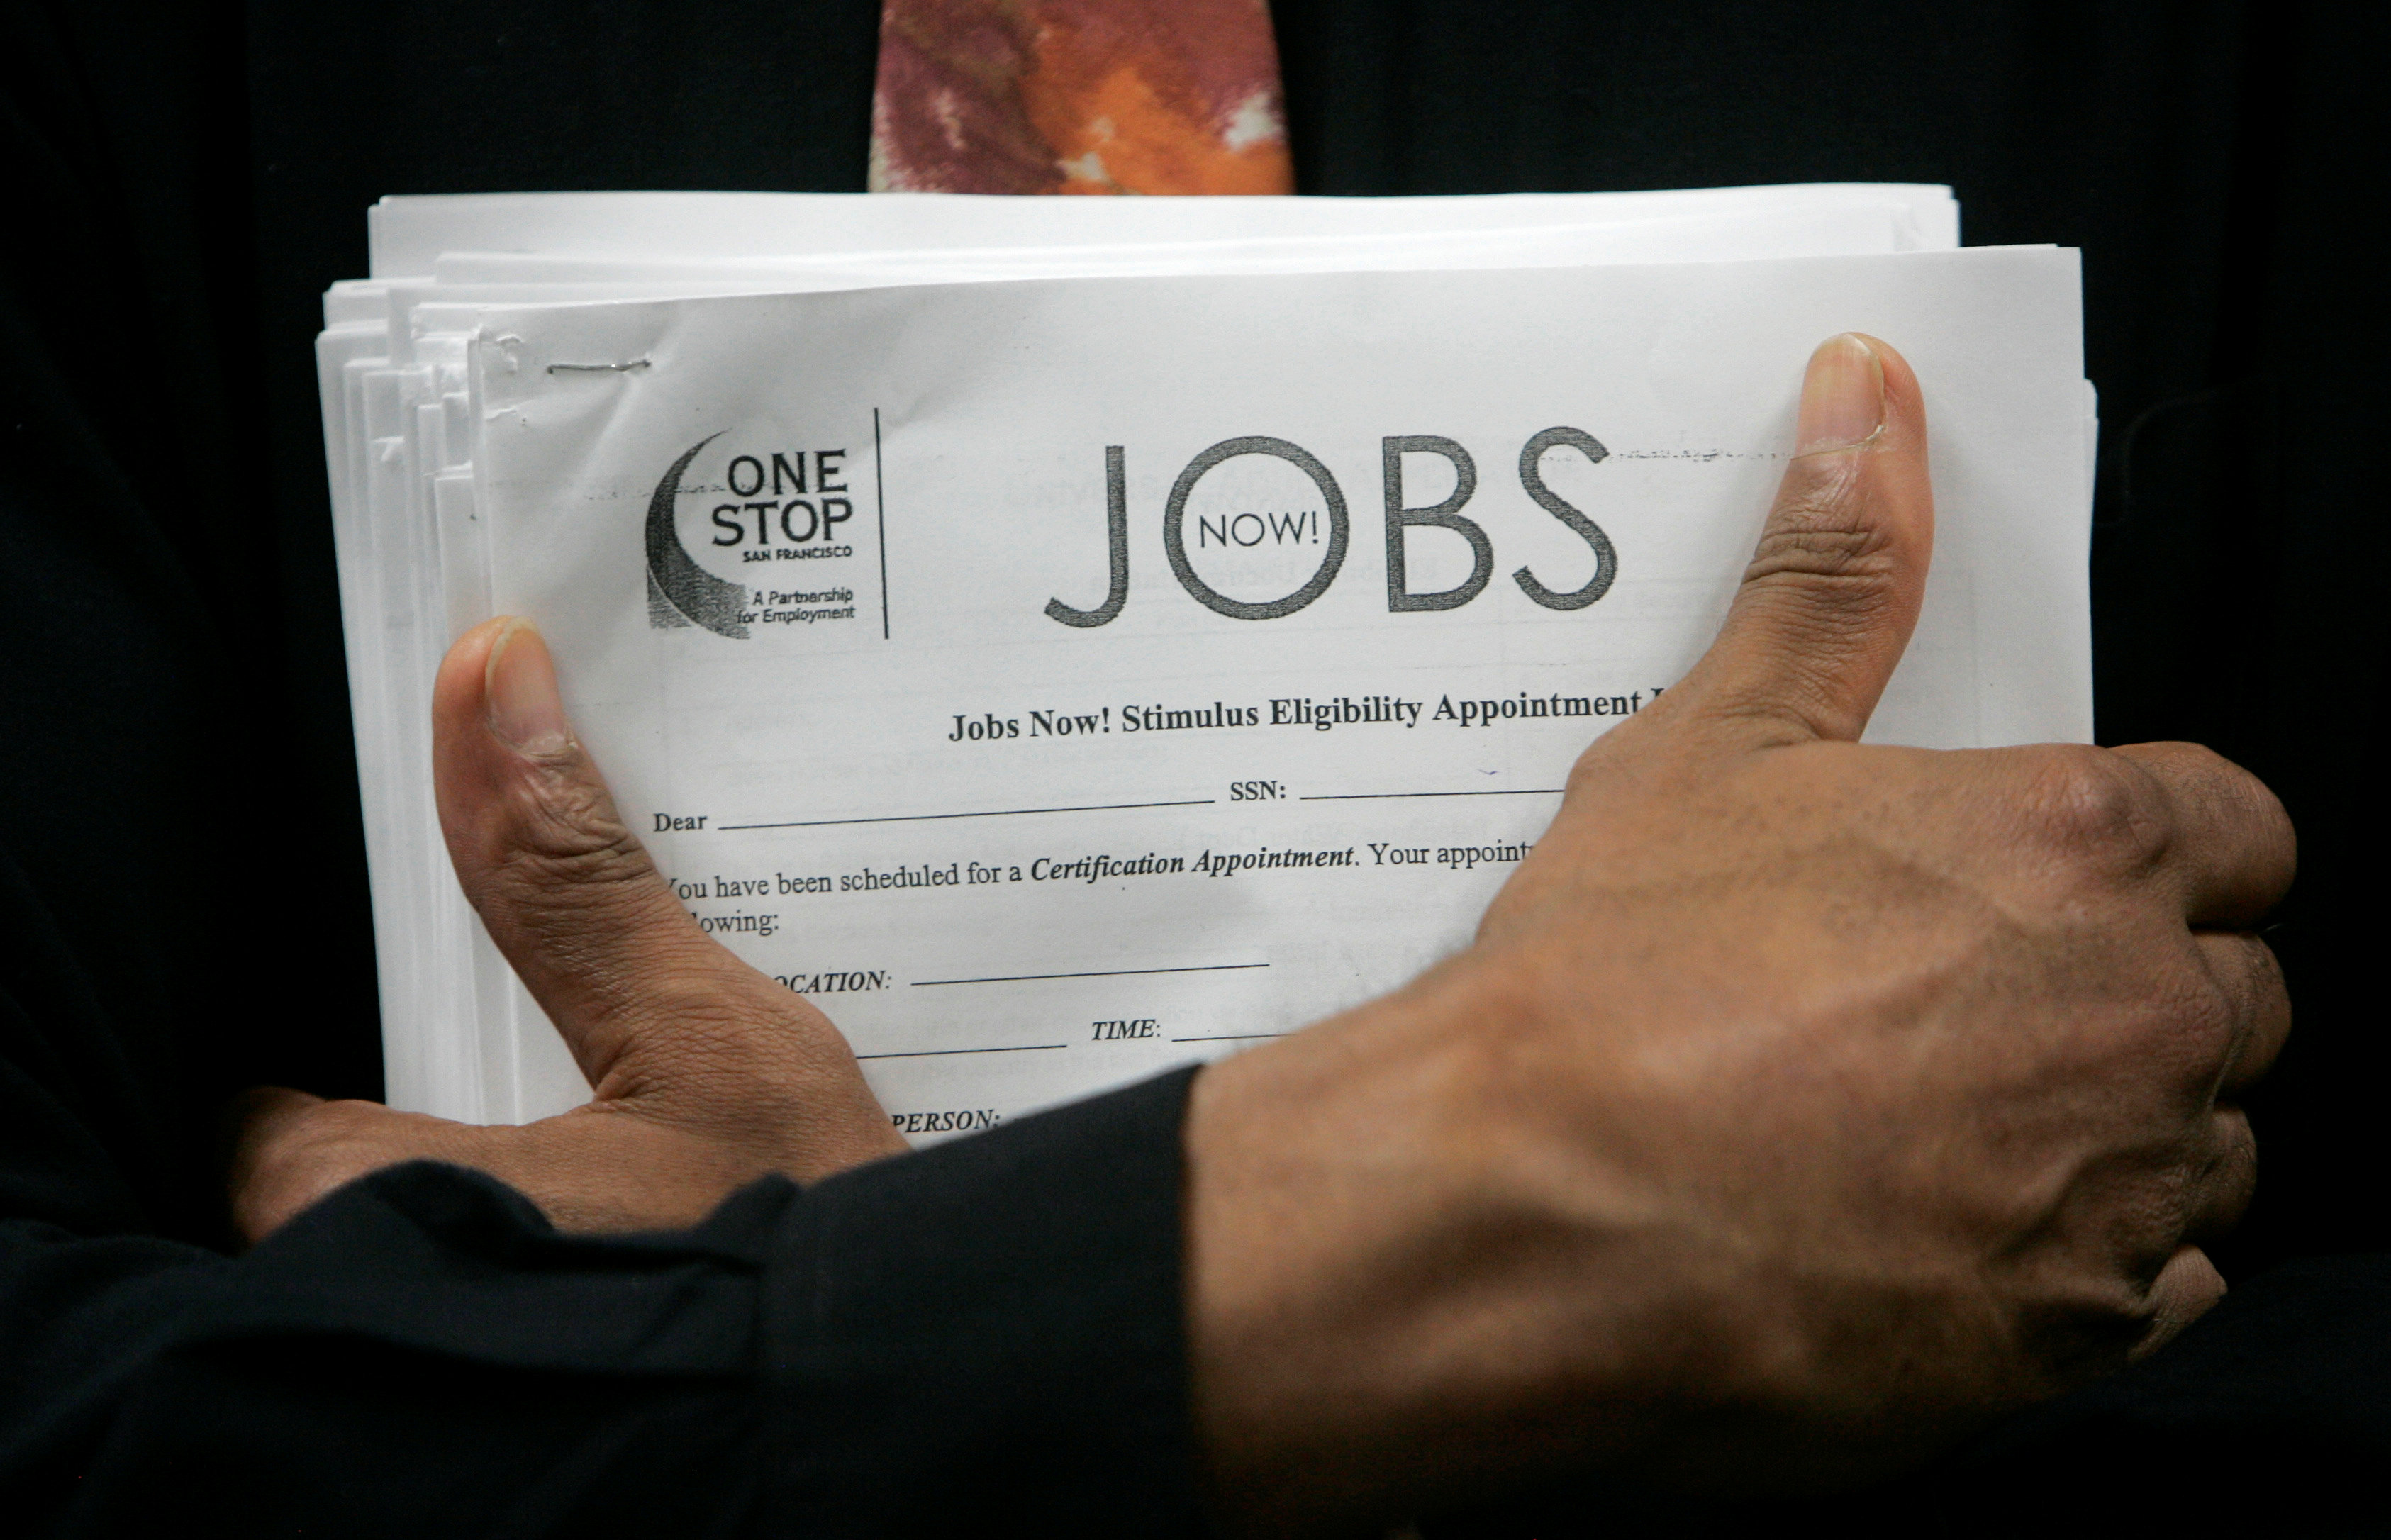 FILE PHOTO: A man carrying a stack of job listings listens to a discussion at the One Stop employment center in San Francisco, California, August 12, 2009. REUTERS/Robert Galbraith/File Photo